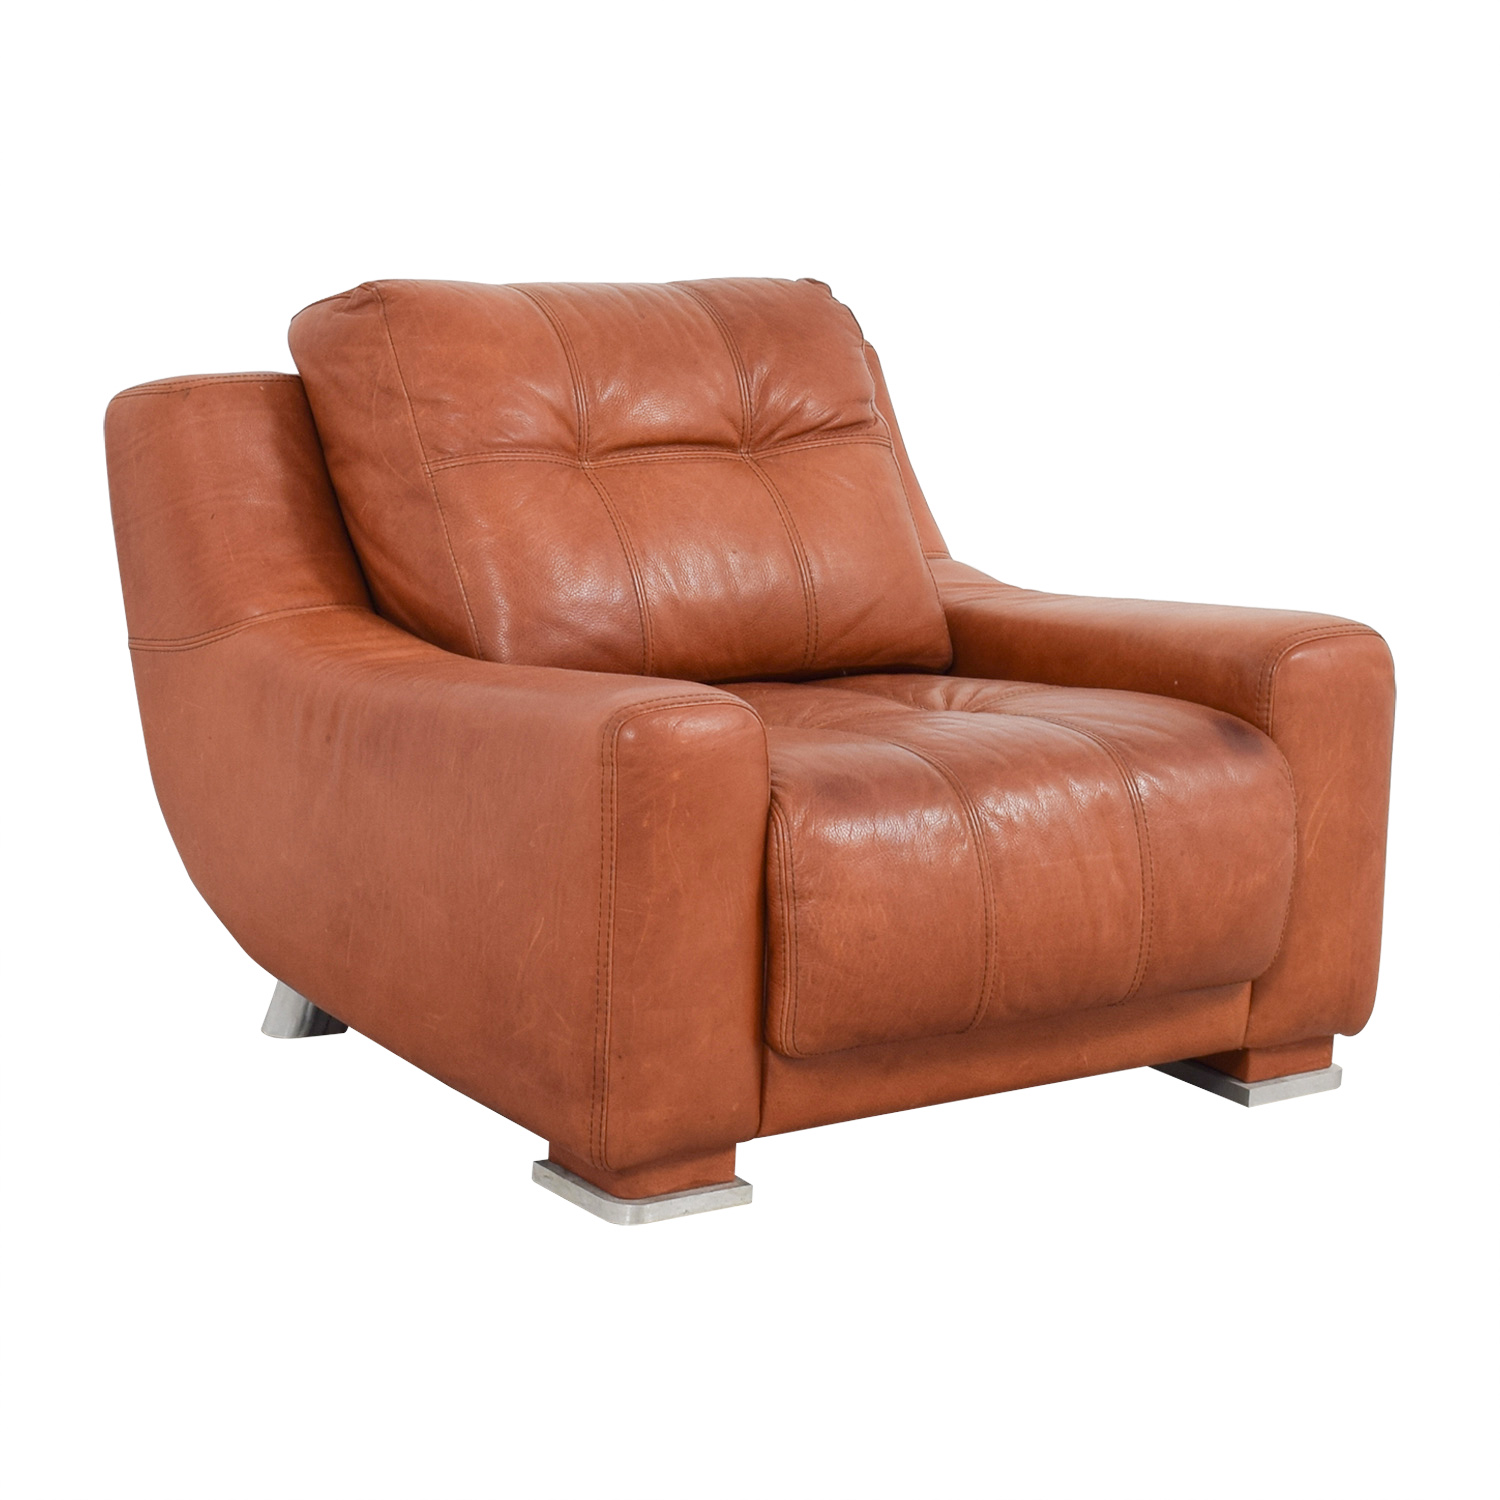 59 Off Contempo Contempo Leather Accent Chair Chairs